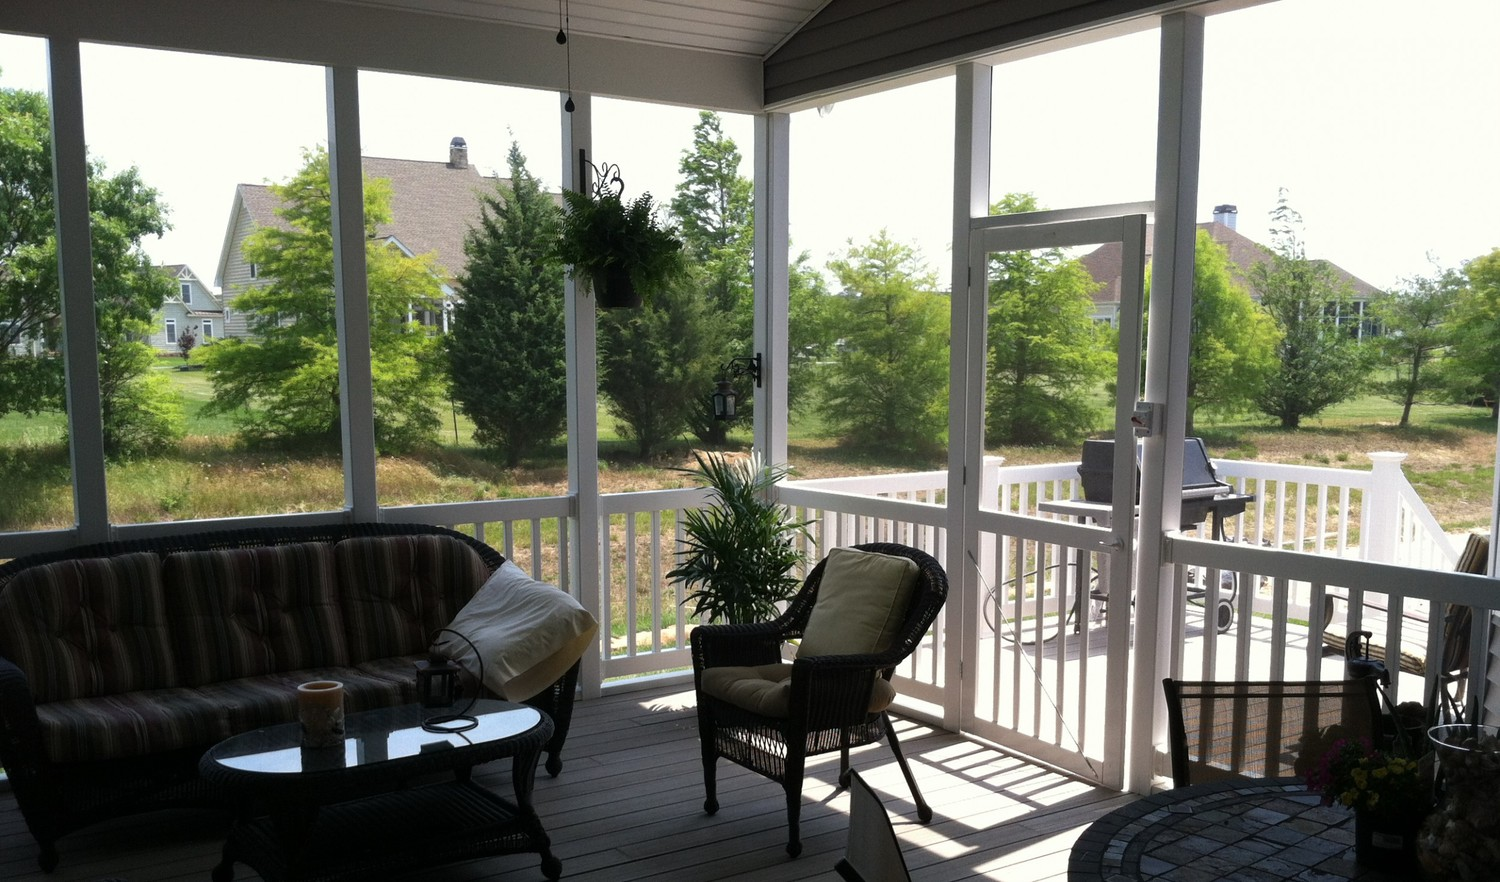 Mr. Sunroom Professional Remodeling   Delaware DE And Maryland MD Sunrooms, Patio  Enclosures, Glass Enclosures, Screen Enclosures